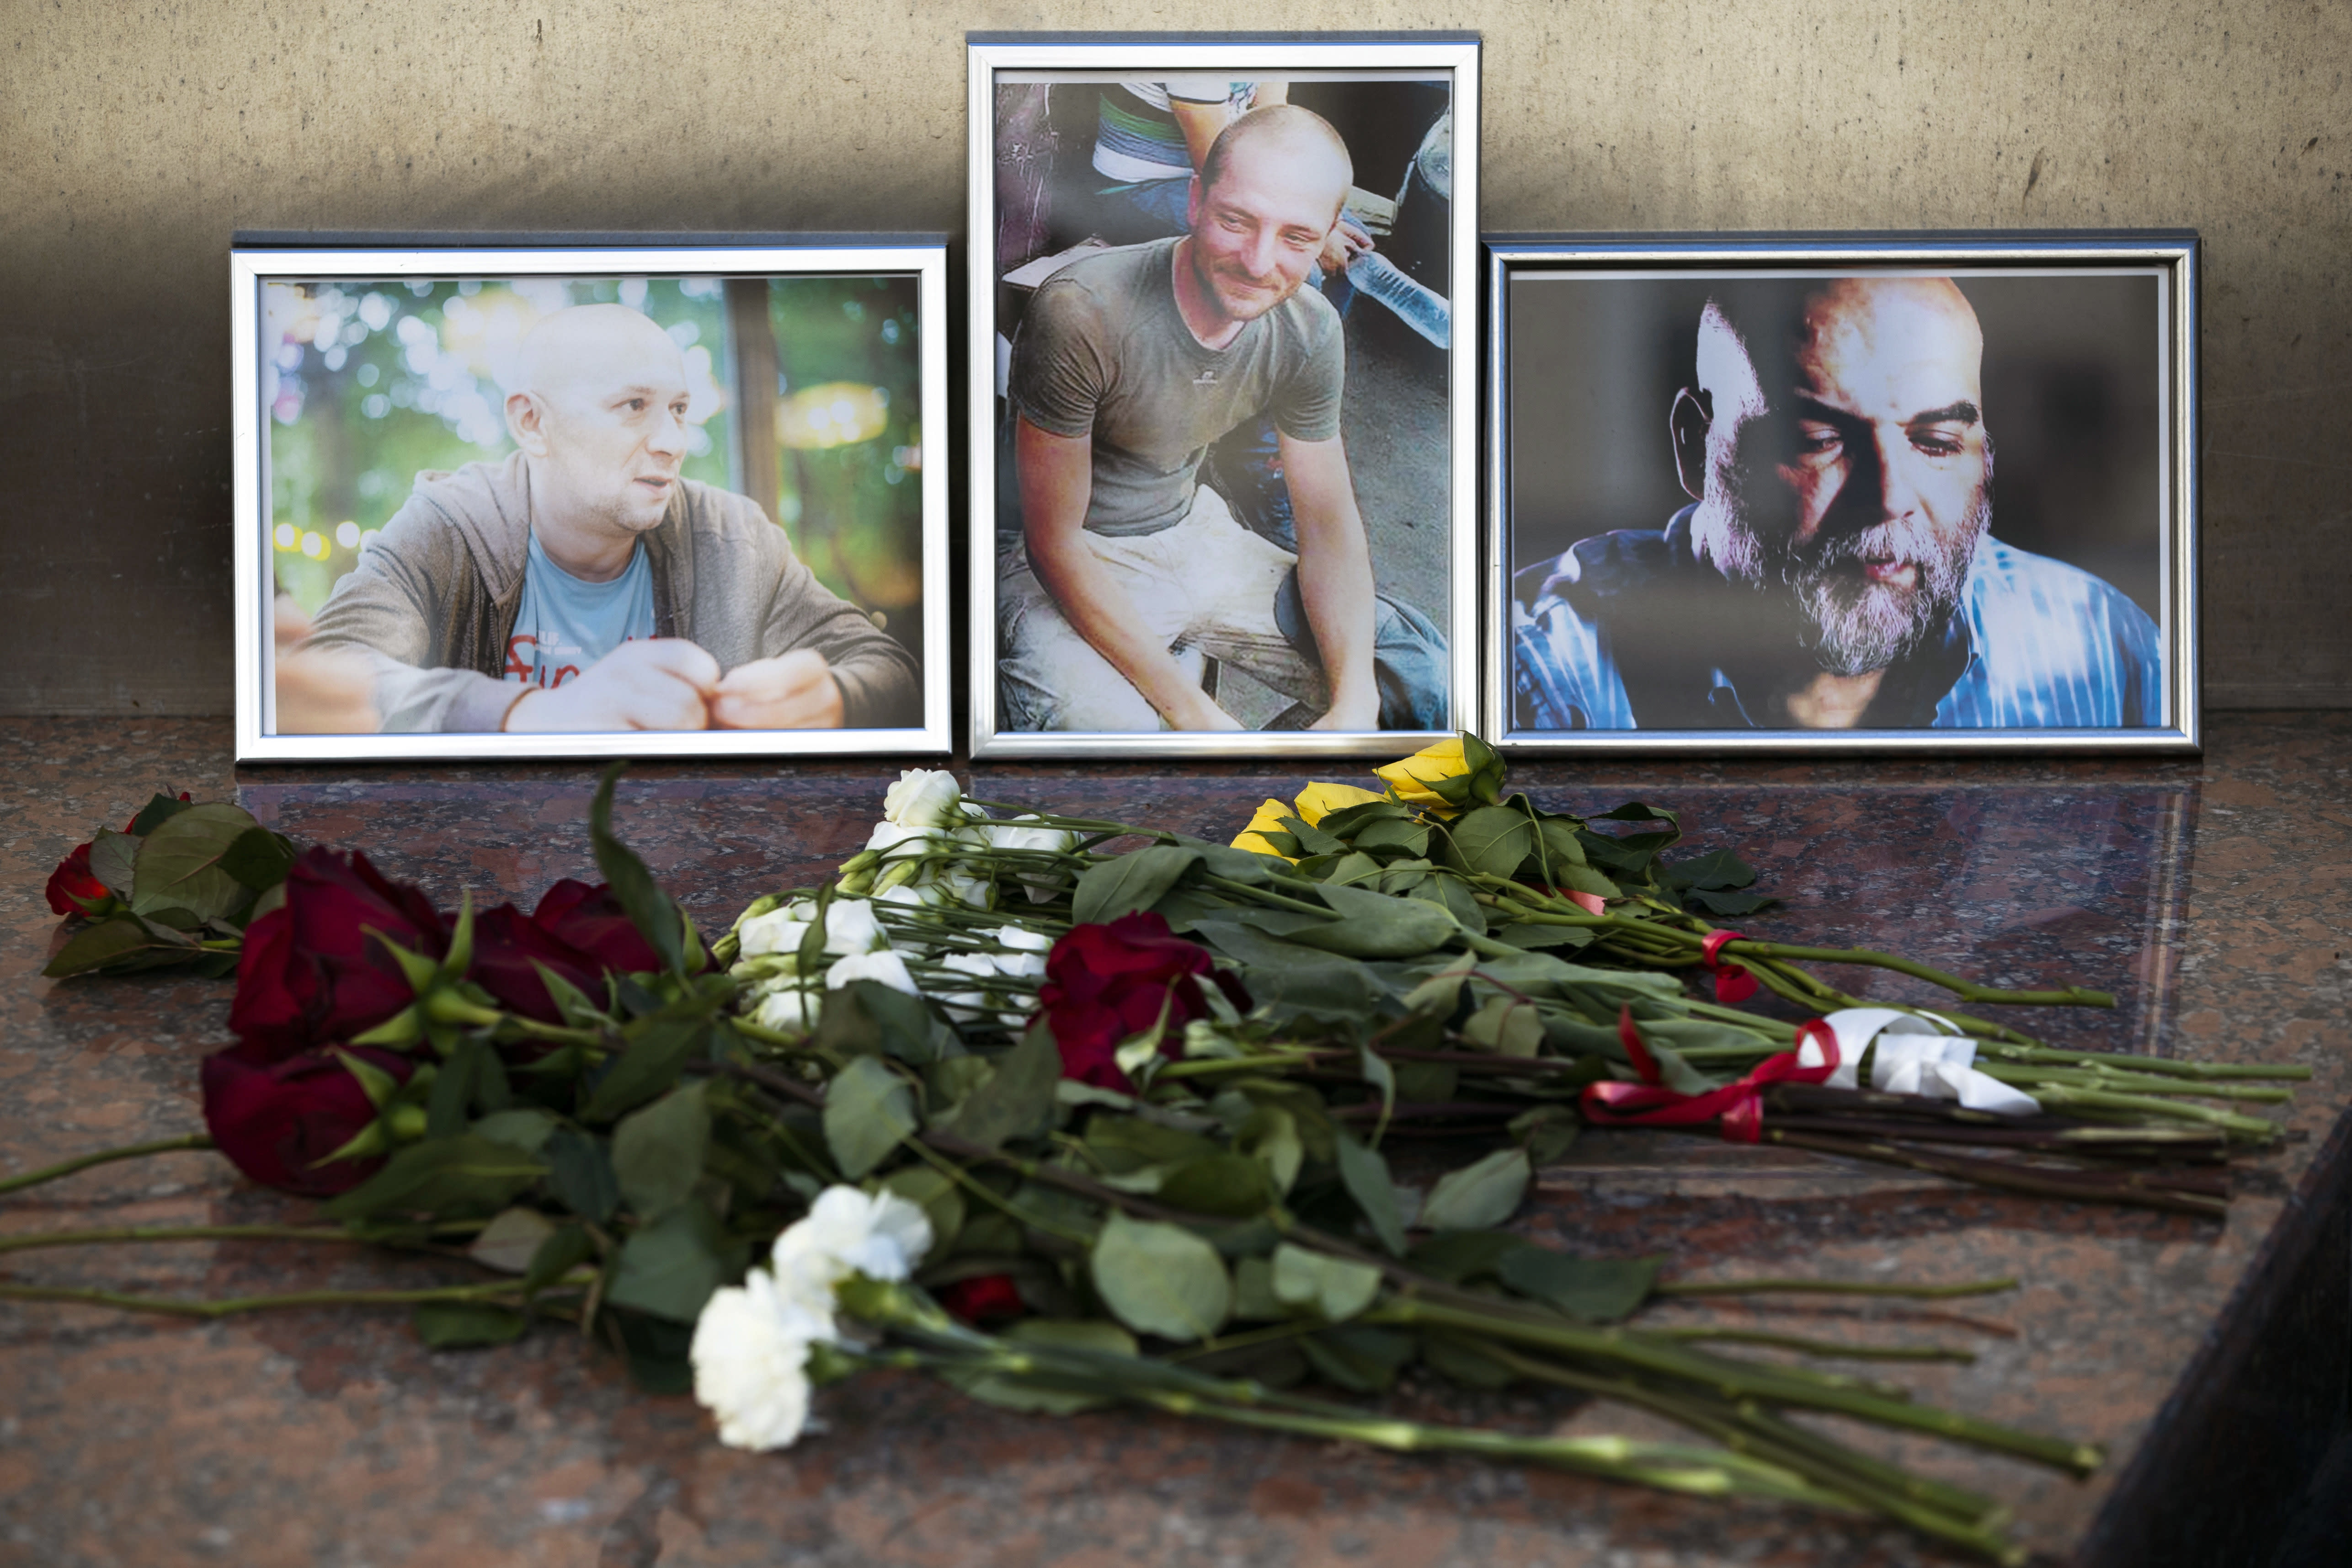 Flowers are placed by portraits of slain journalists Alexander Rastorguyev, Kirill Radchenko and Orkhan Dzhemal, at the Russian journalists Union building in Moscow, Russia, Wednesday, Aug. 1, 2018. Russian journalists who were killed in the Central African Republic had been working on an investigation into Russian private military contractors and the mining industries there, their editor said Wednesday. (AP Photo/Pavel Golovkin)